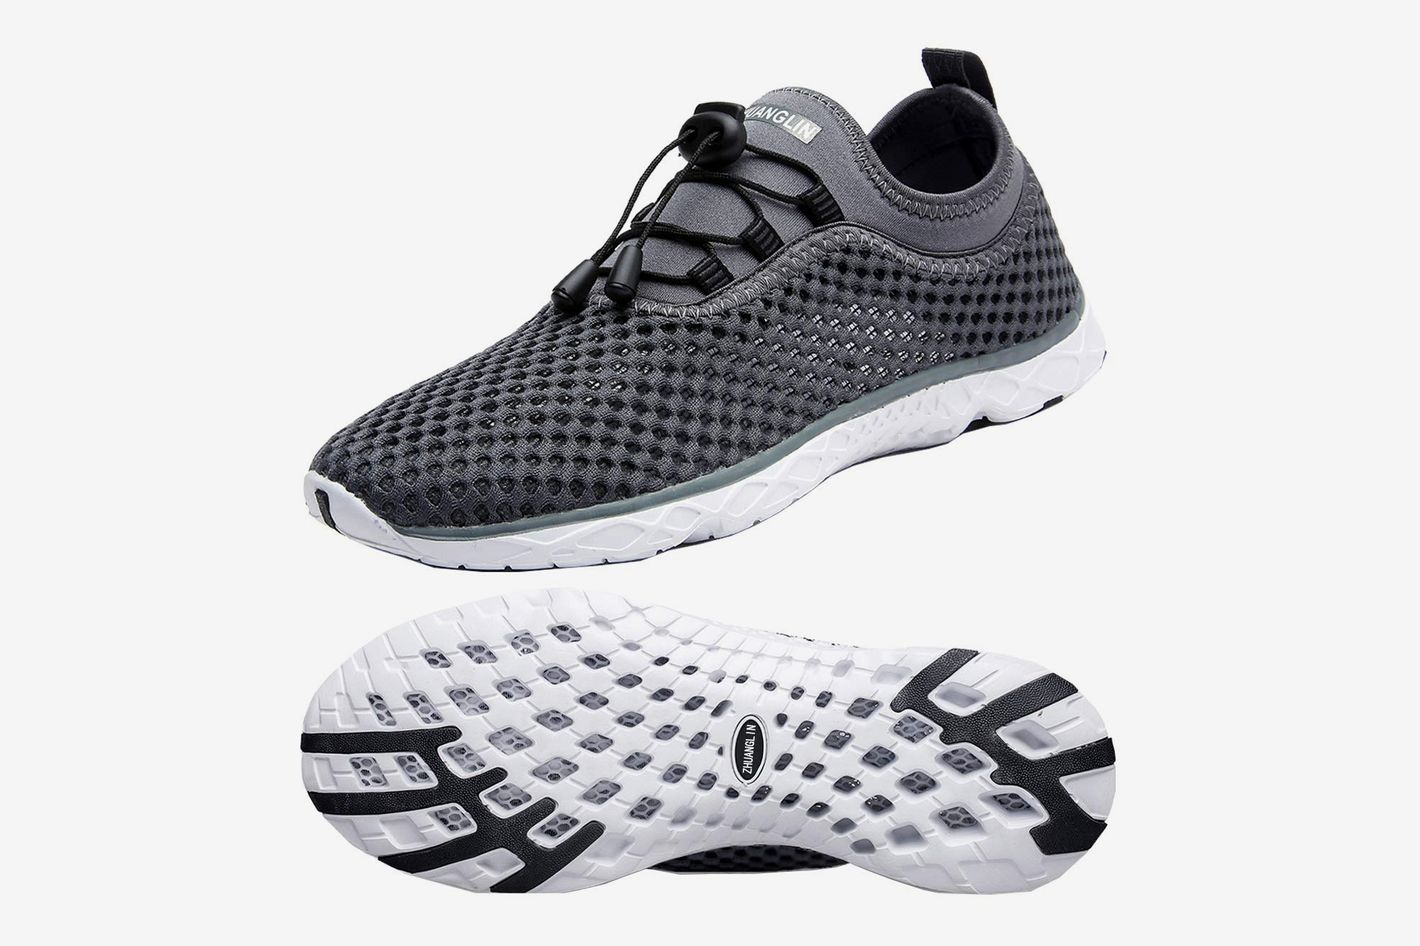 d2050df78a334 11 Best Water Shoes for Men — 2019